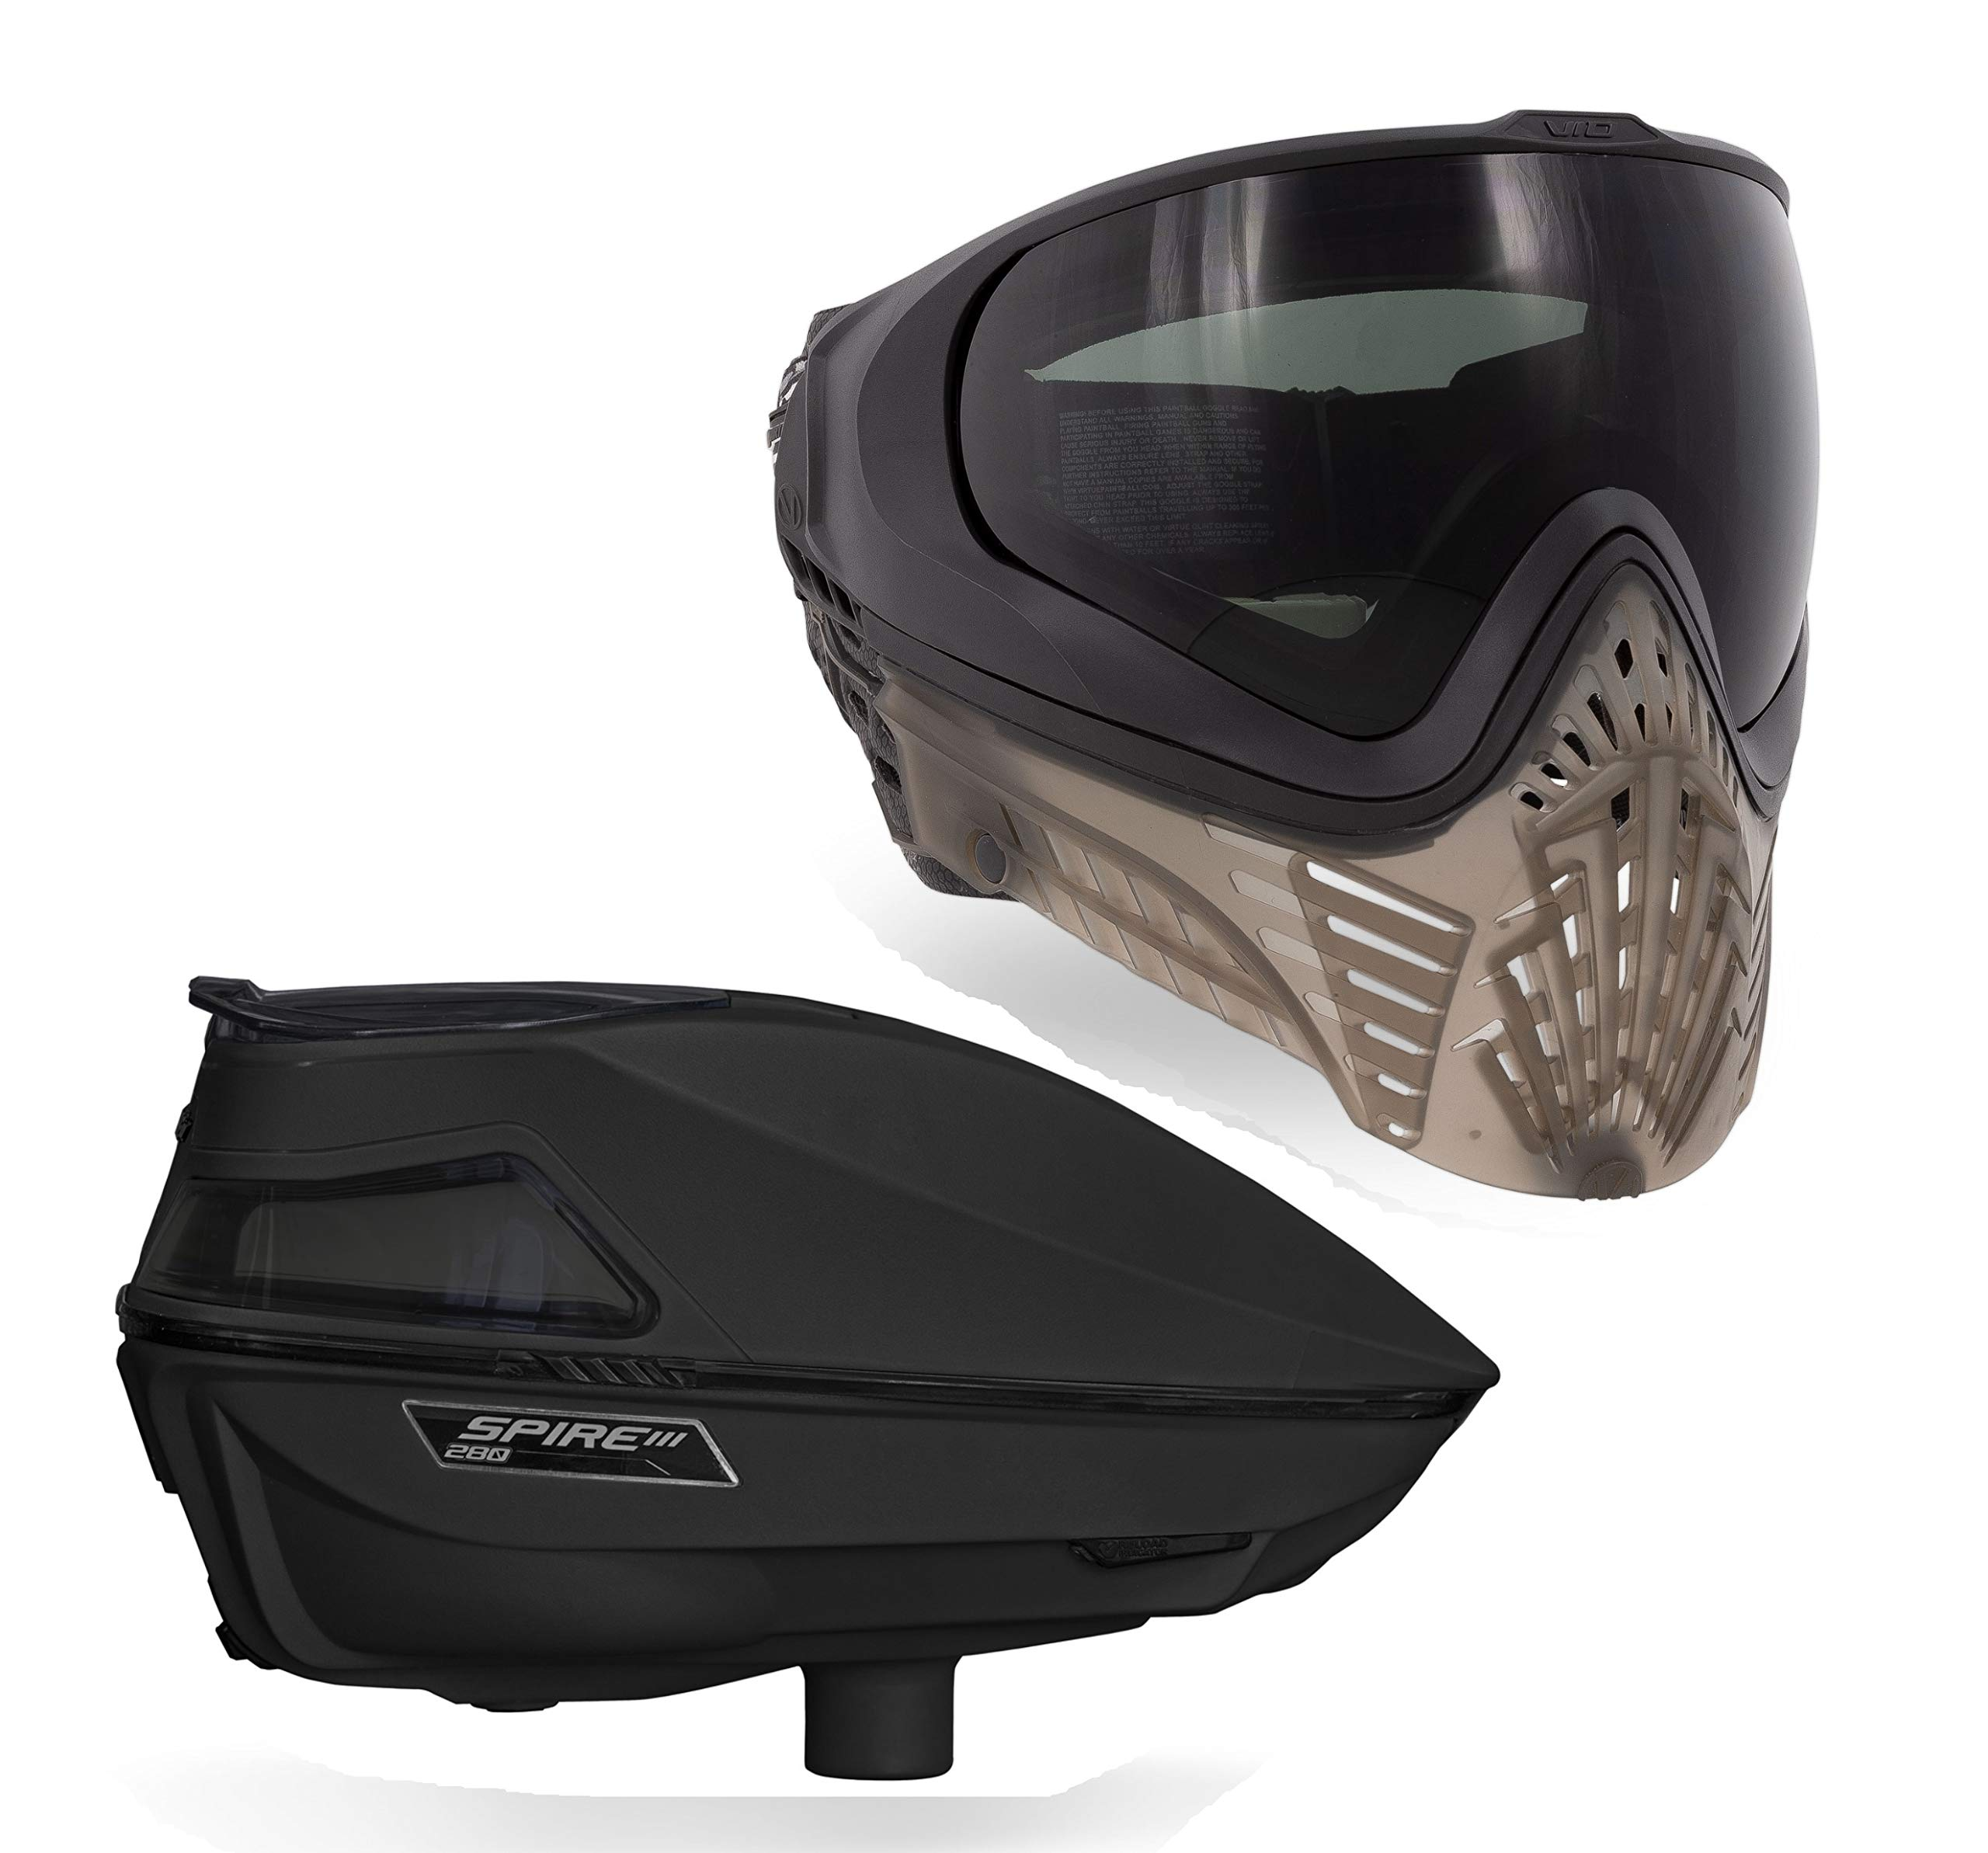 Virtue VIO XS II Paintball Goggle and Spire III 280 Paintball Loader Bundle - Black Smoke by Virtue Paintball